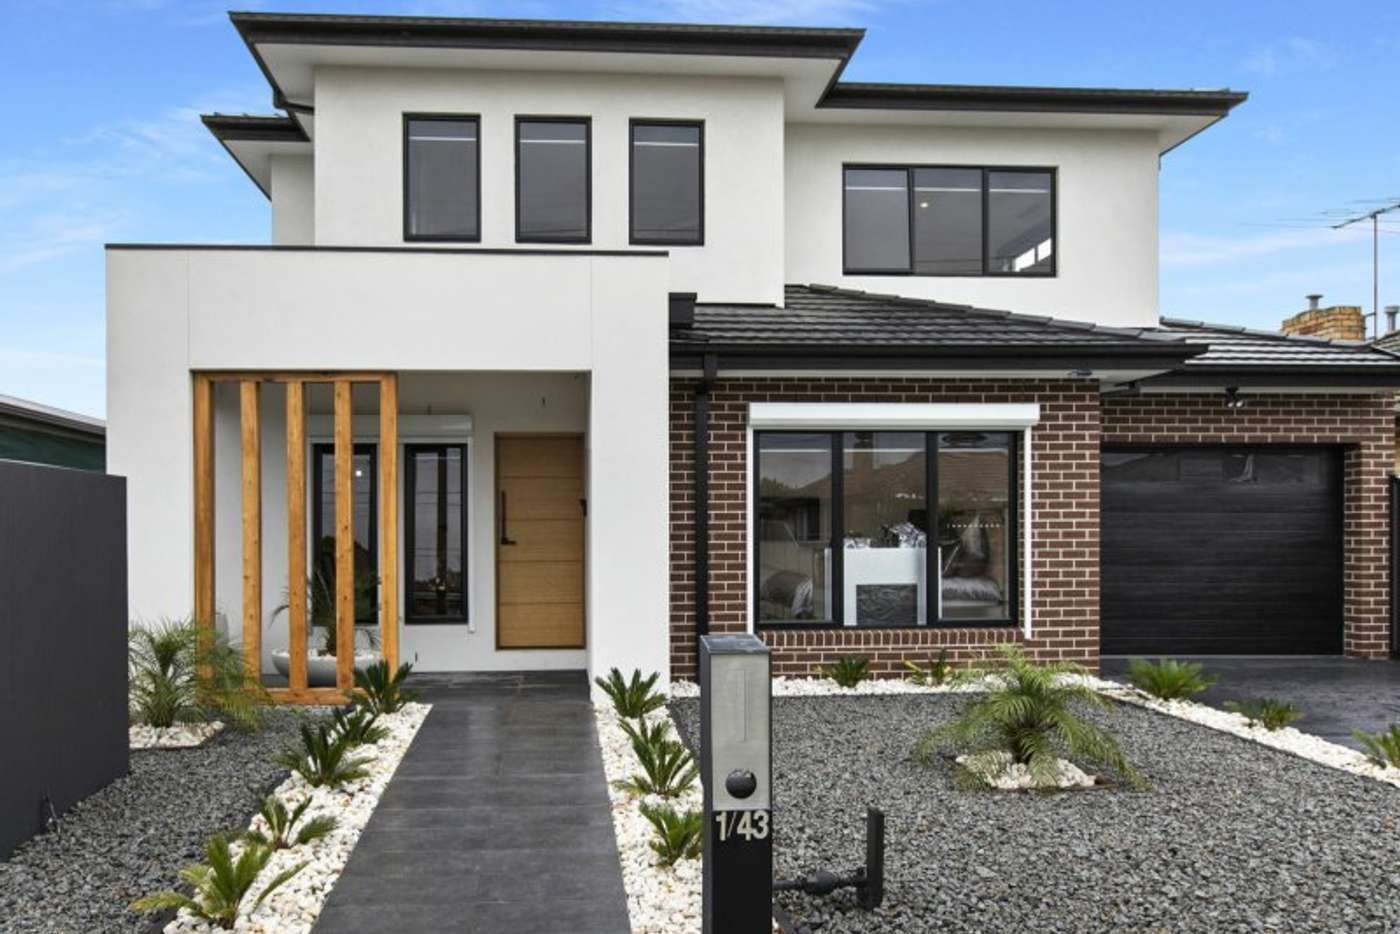 Main view of Homely house listing, 1/43 Links street, Sunshine West VIC 3020